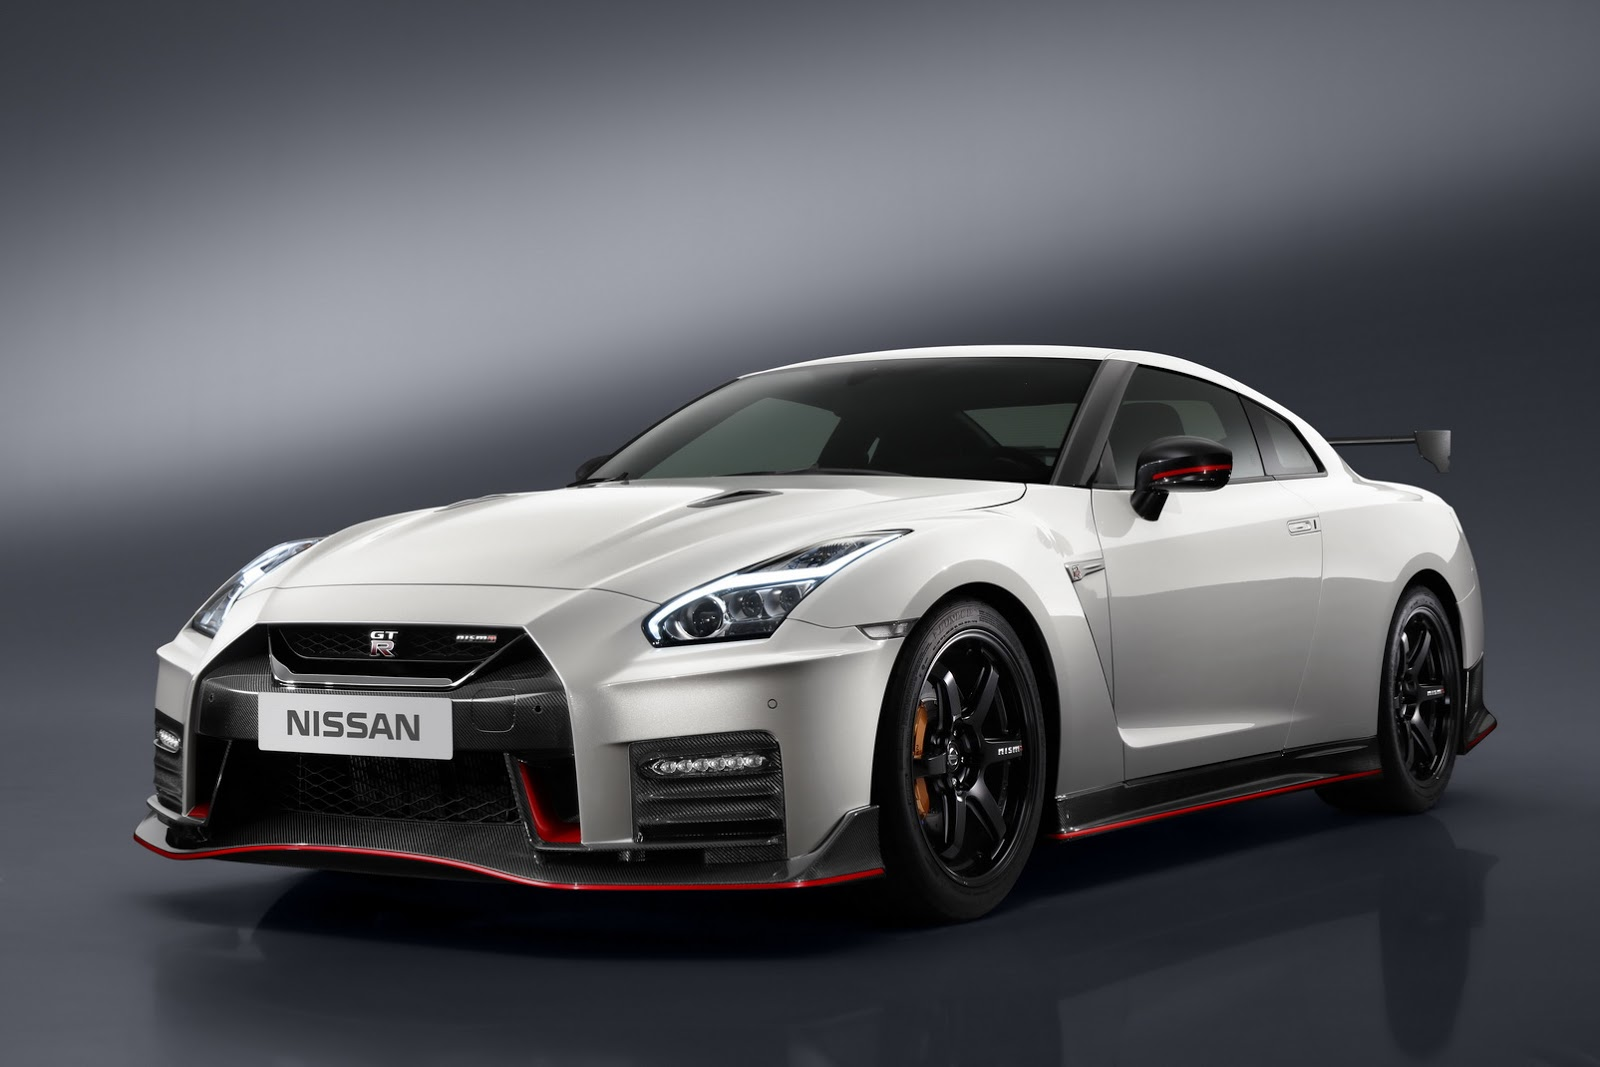 Nissan GT-R I Restyling 2 2013 - 2016 Coupe #7